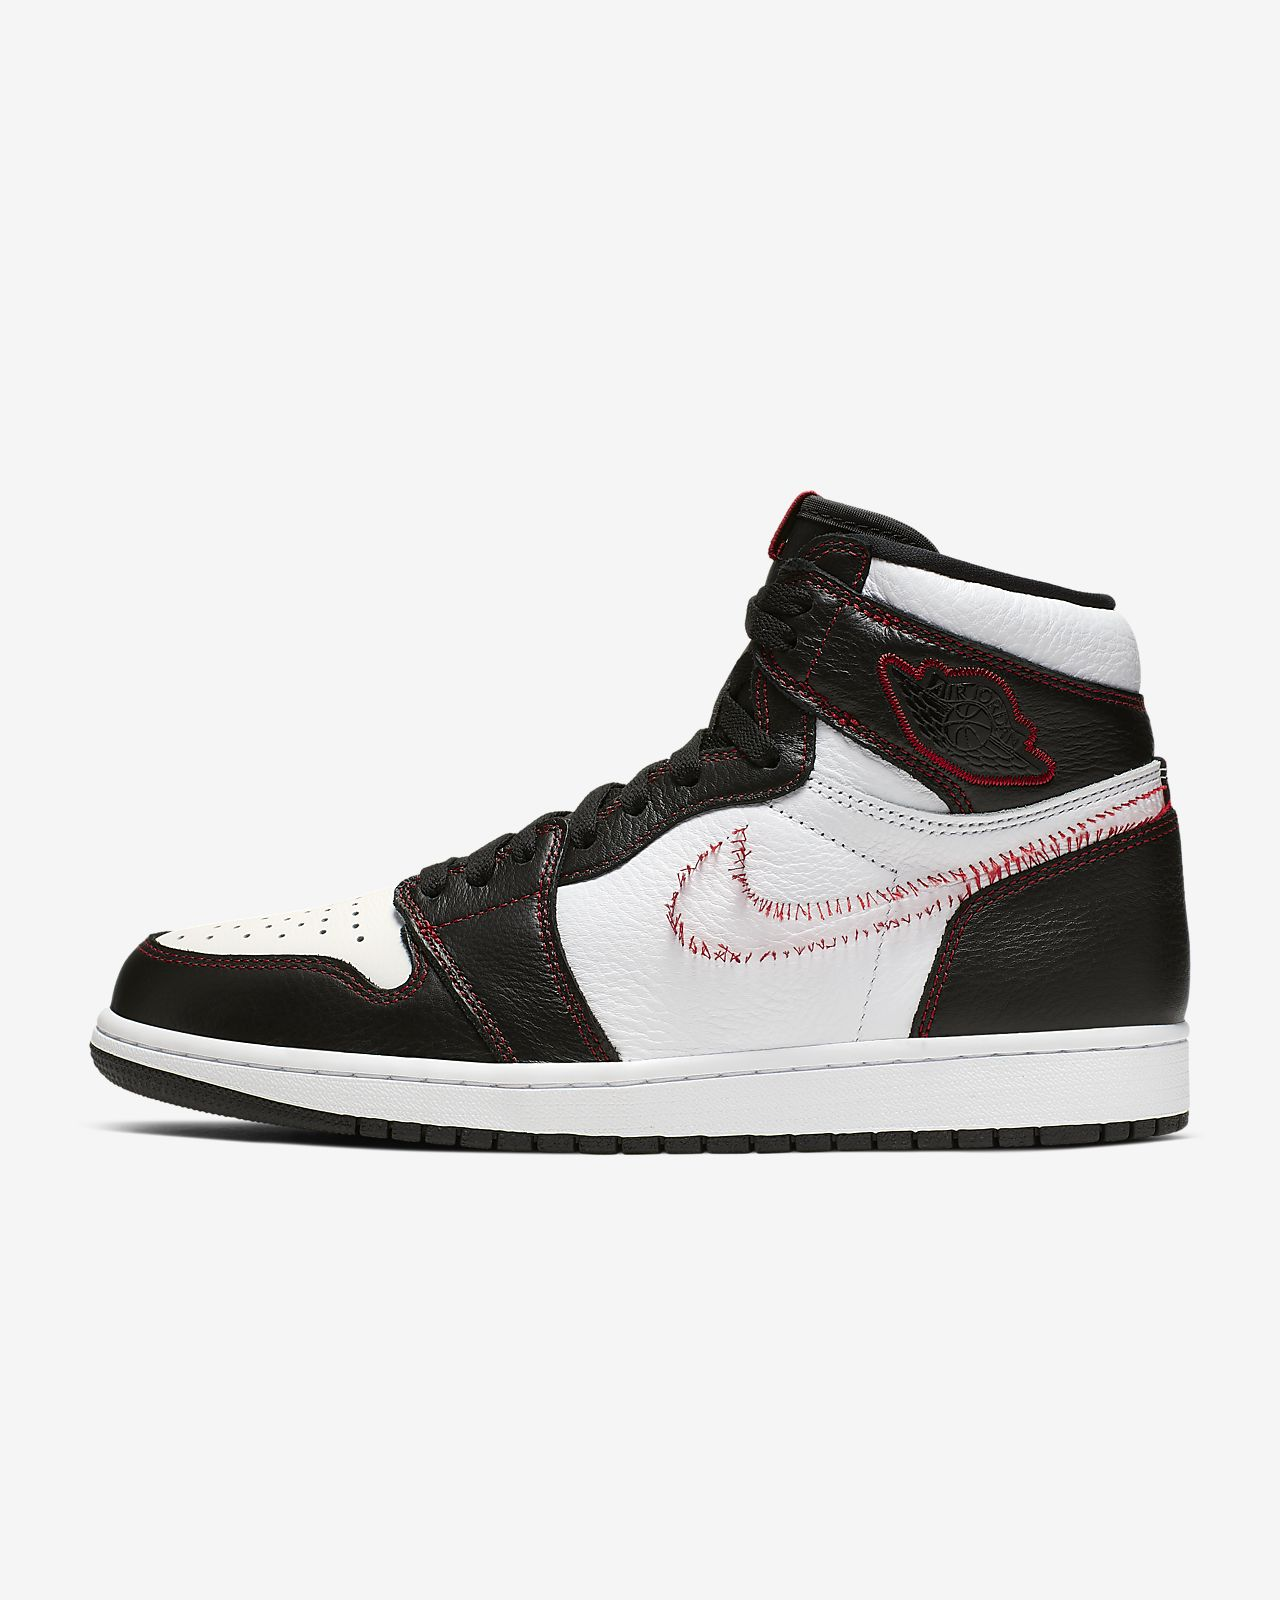 2a4190b5ed Air Jordan 1 High OG Defiant Men's Shoe